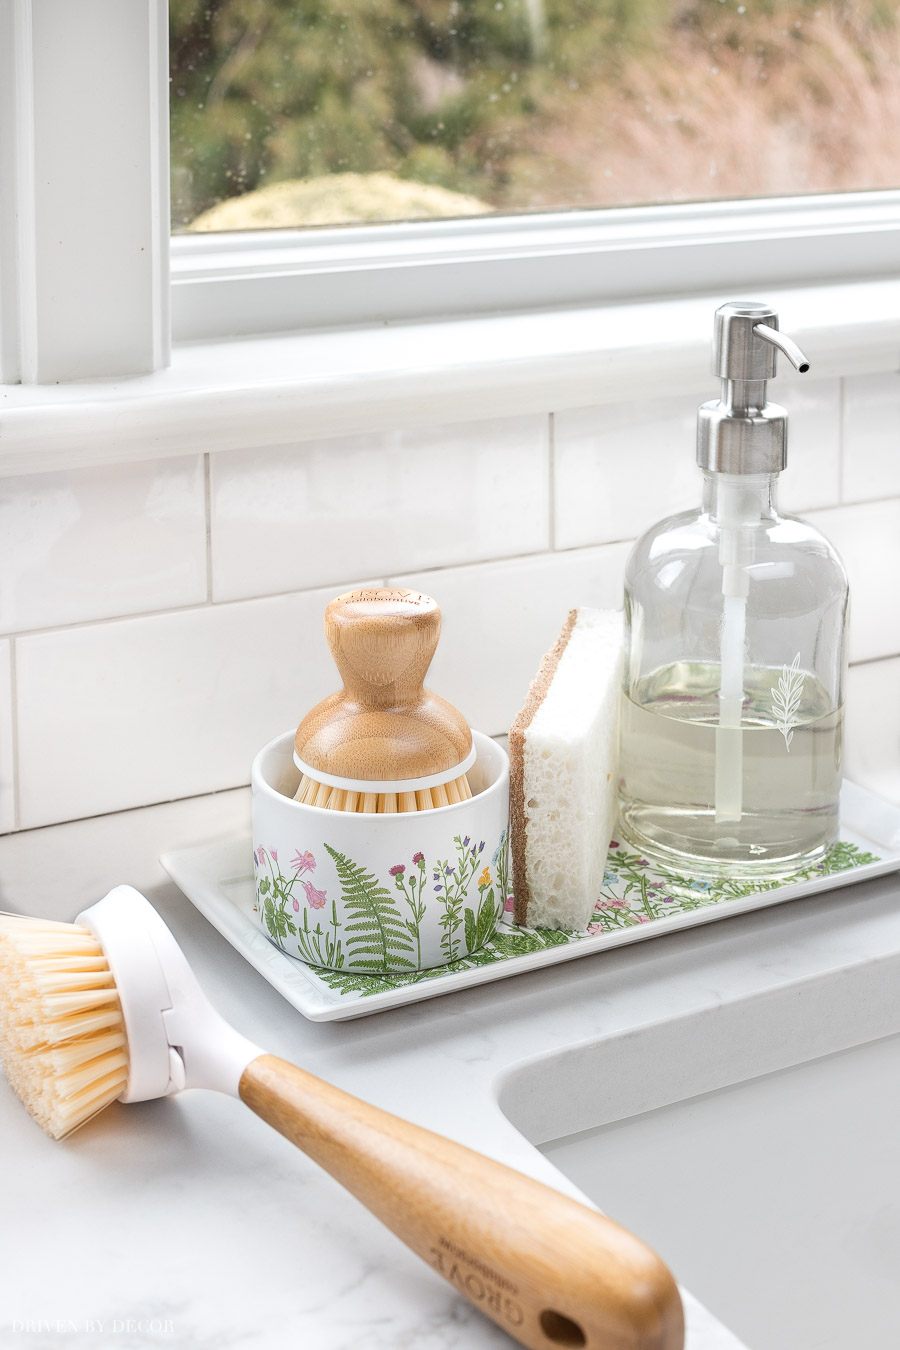 This cute sink tray is perfect for holding a soap pump, sponge, and Bubble Up soap dispenser & brush!